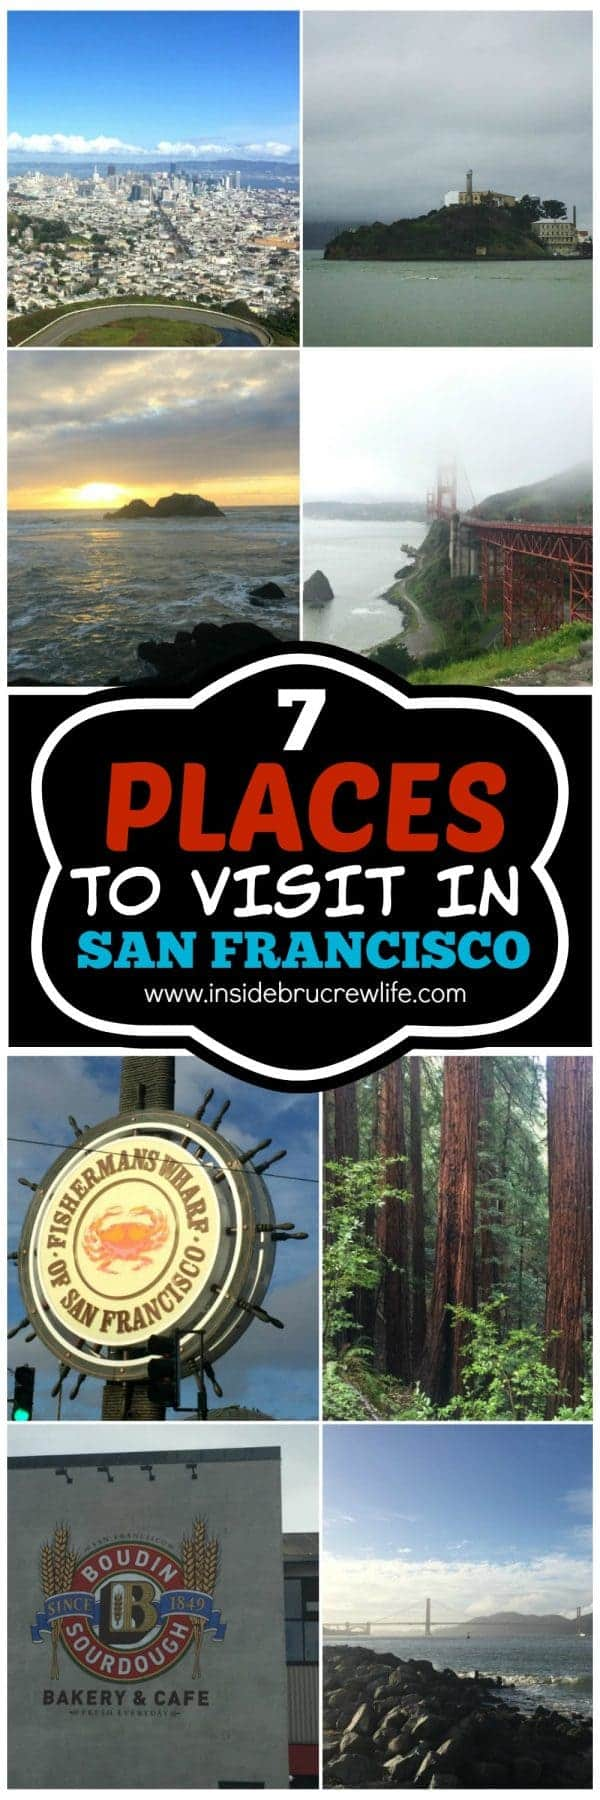 Seven Places to Visit in San Francisco - if you only have a few days to visit San Francisco,here are 7 places you should visit